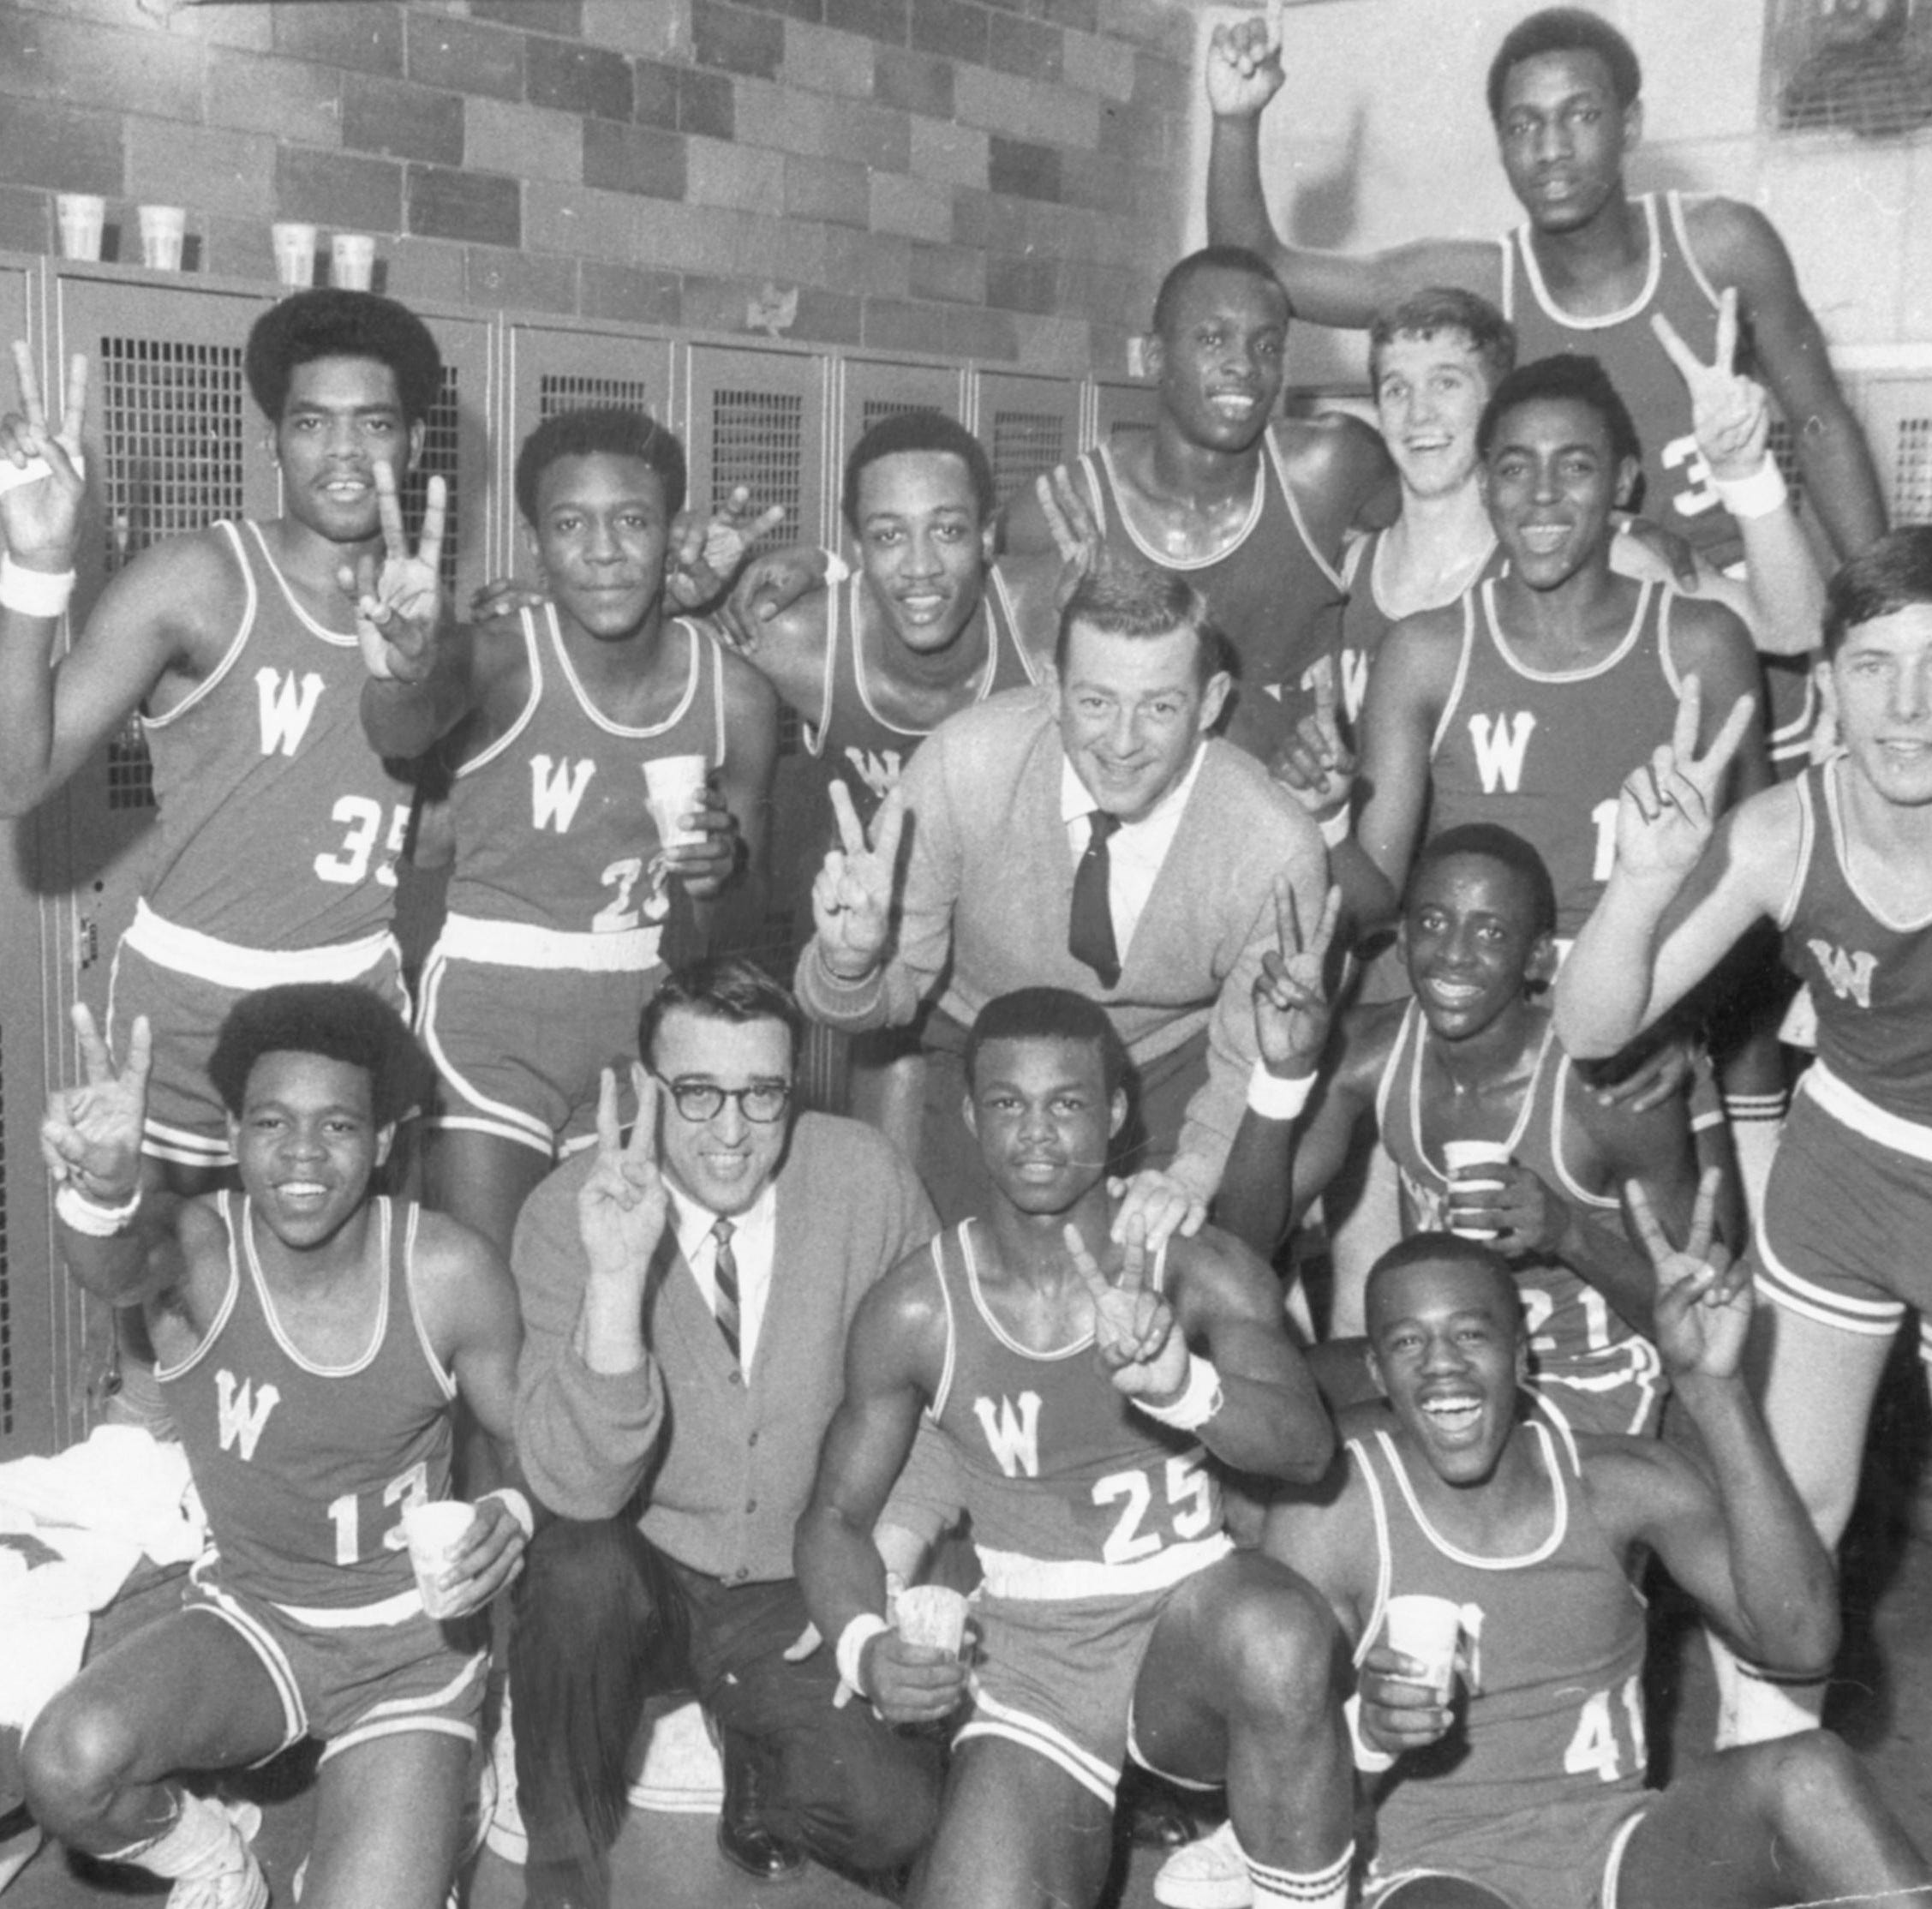 50 years later: Washington Continentals remain one of Indiana high school basketball's greatest teams ever